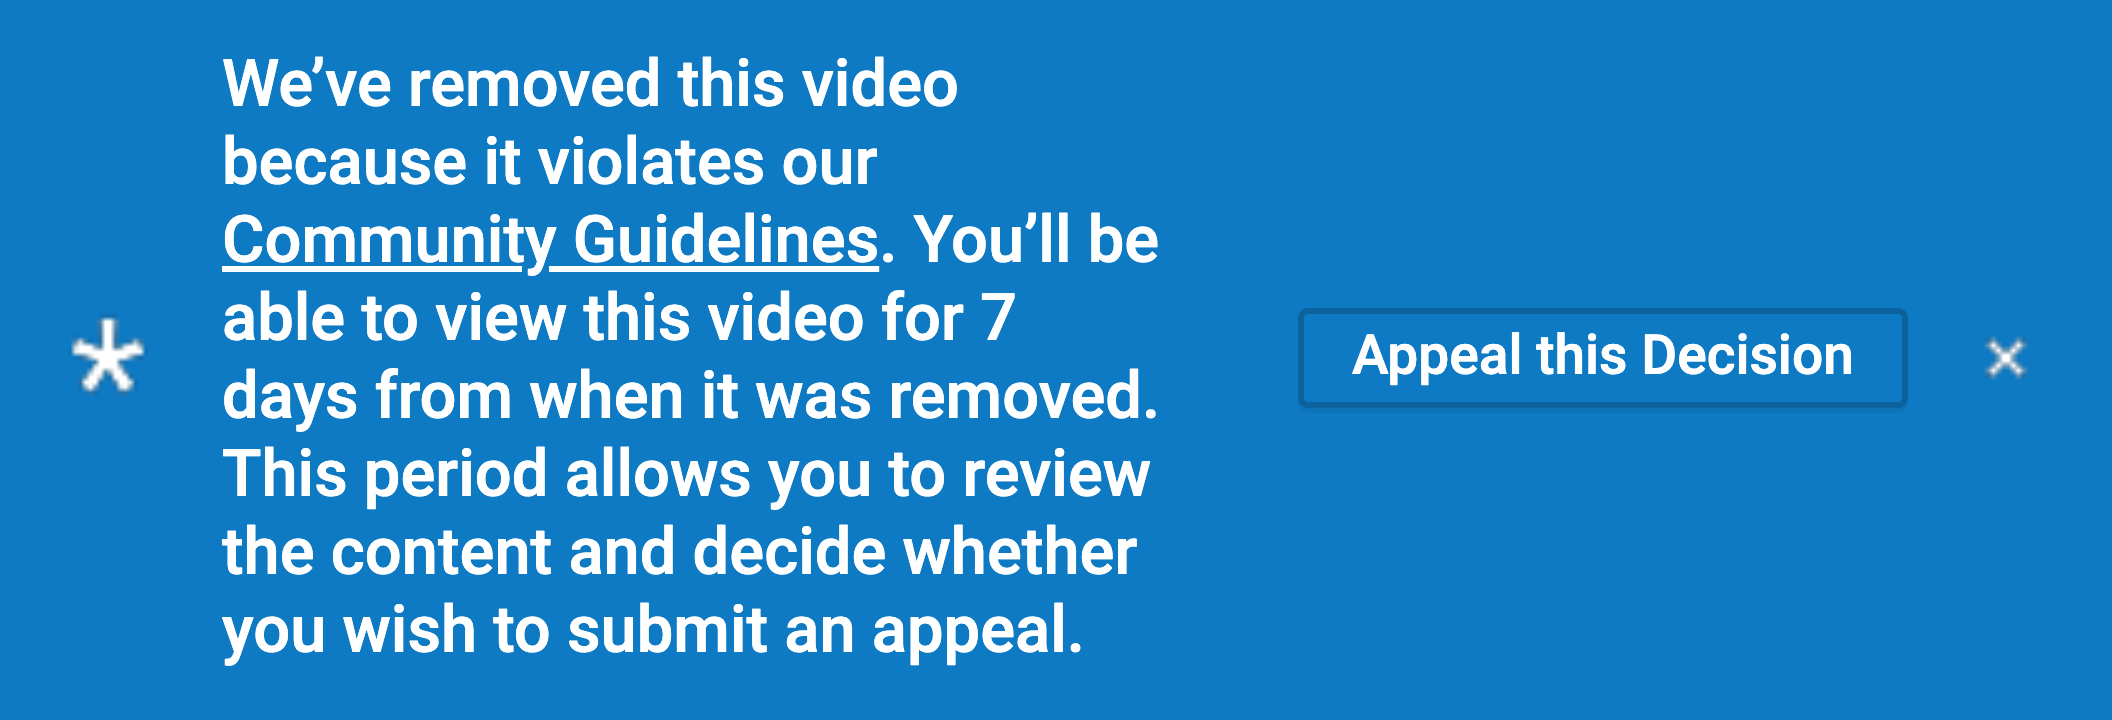 youtube-video-removed-message.png